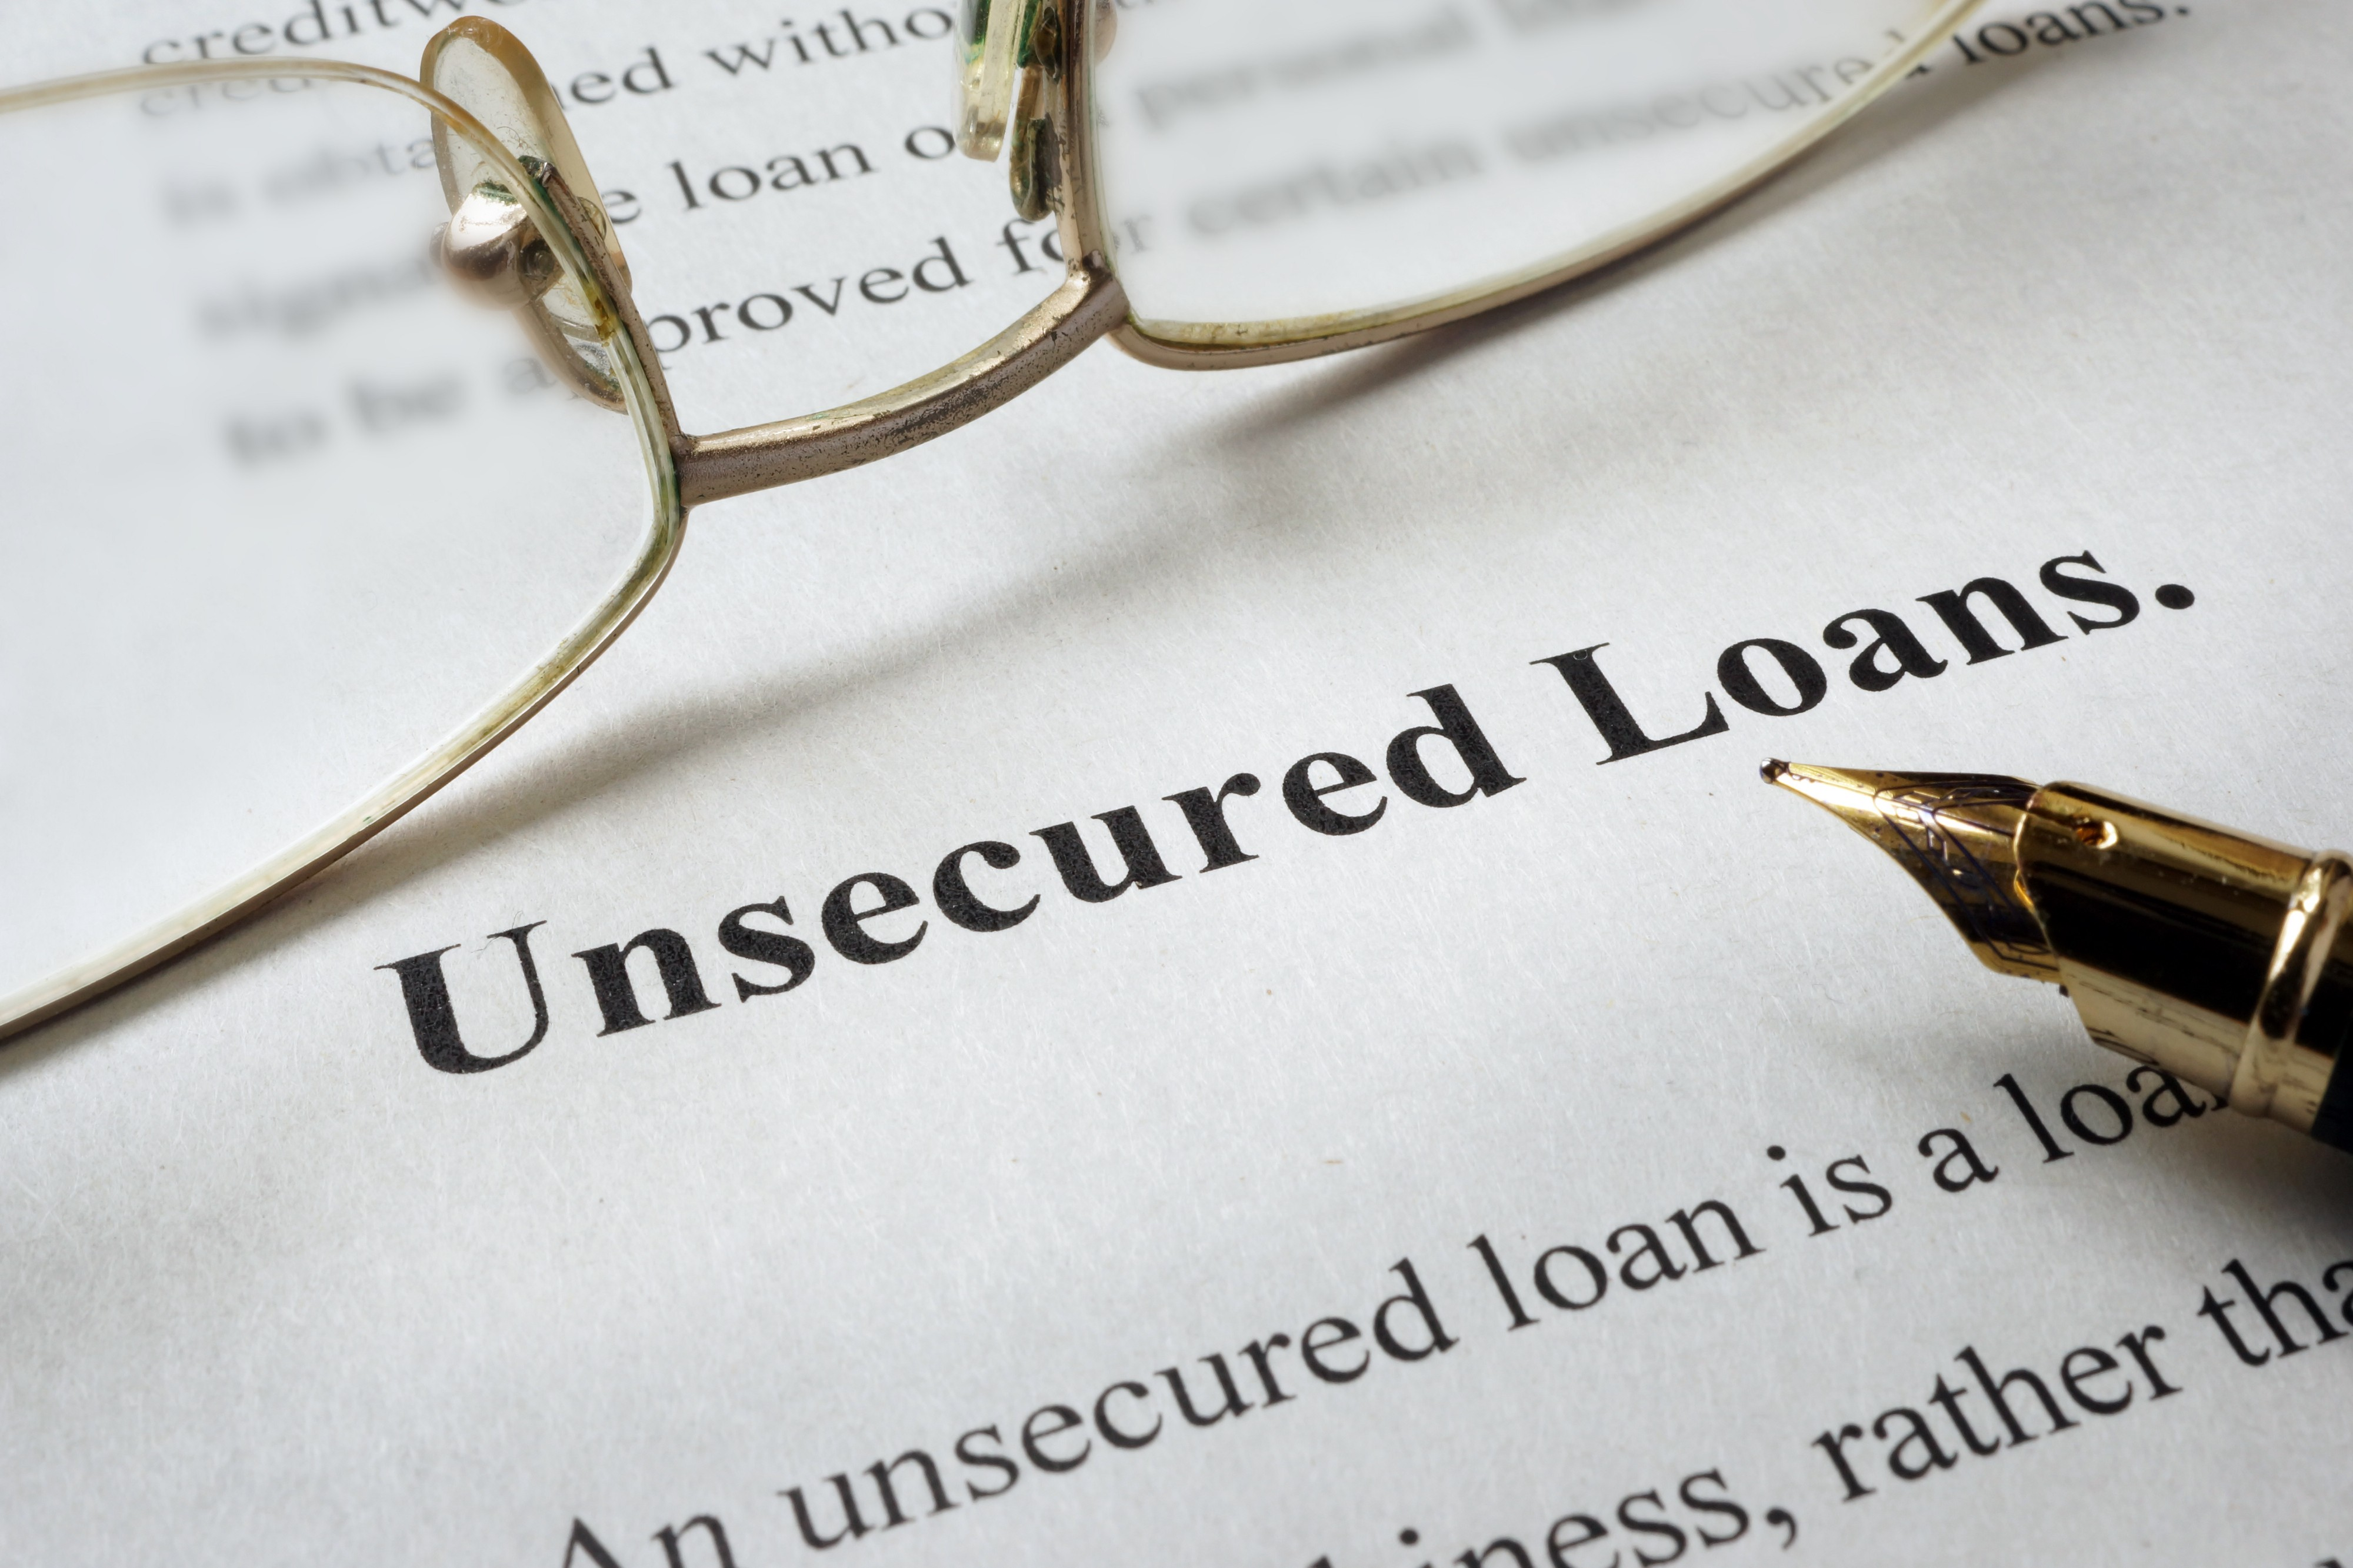 Applying for an unsecured loan is tough when you have poor credit